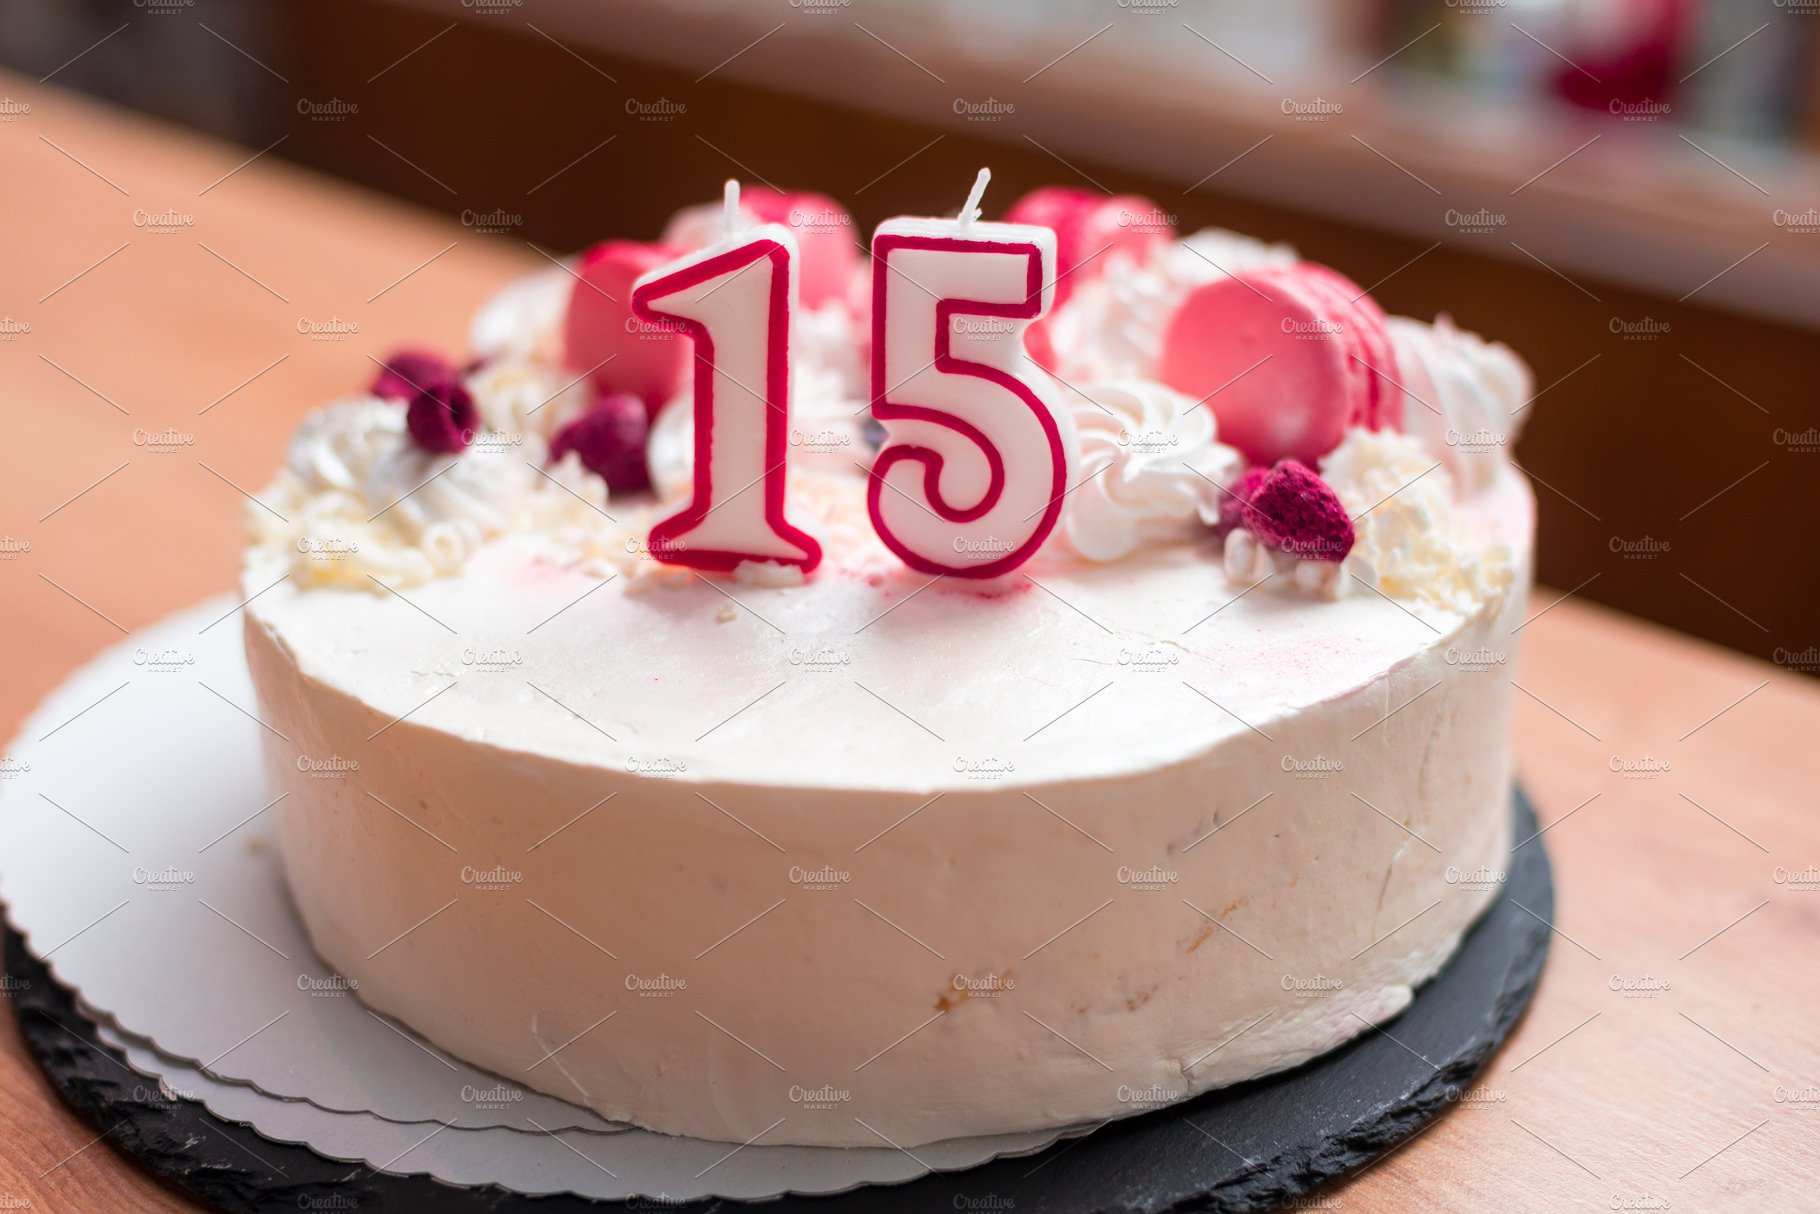 Birthday Cake For 15 Years Old Girl Food Images Creative Market